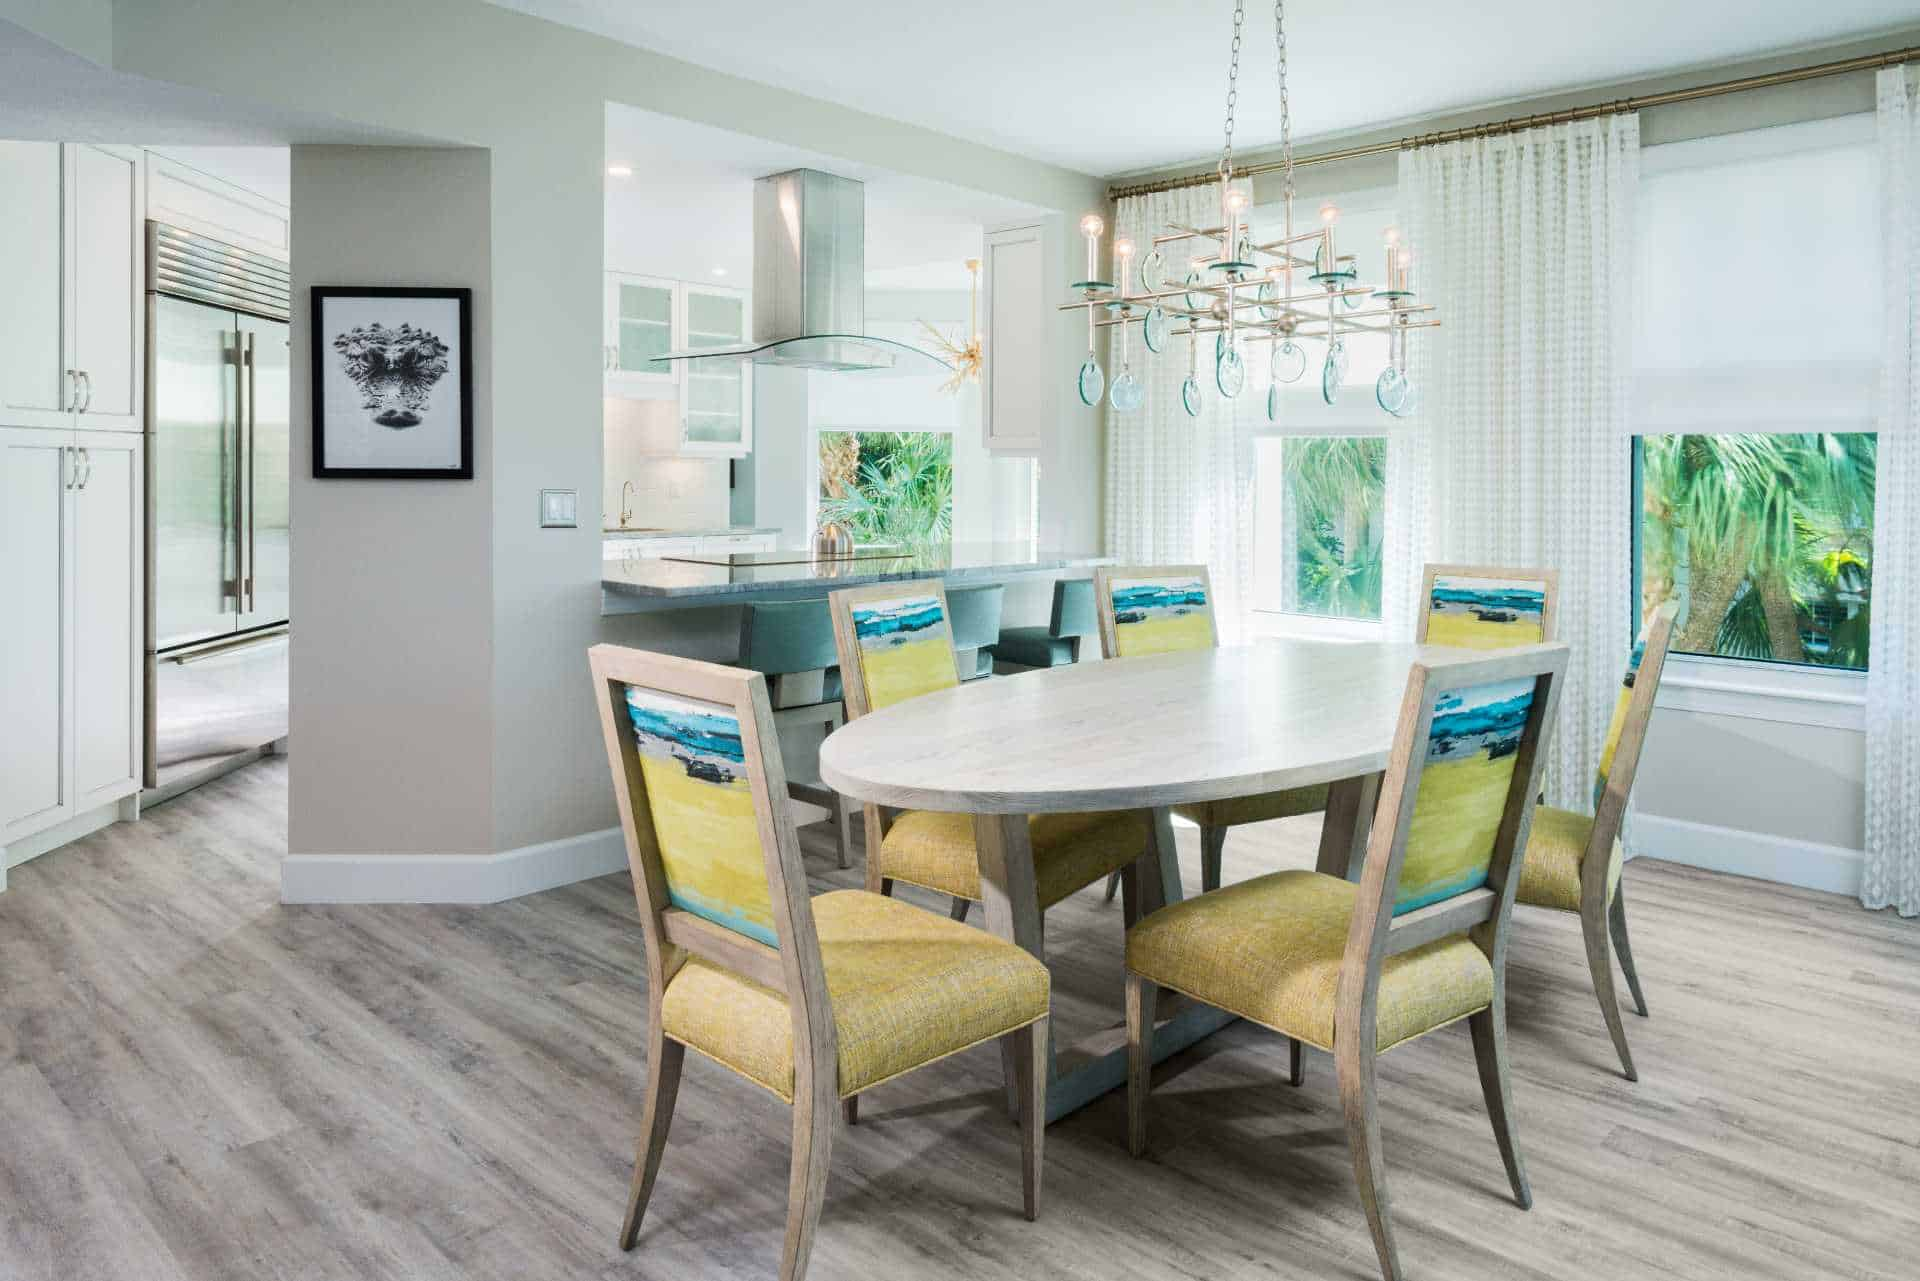 Six-seat dining room with chandelier and open counter to kitchen area